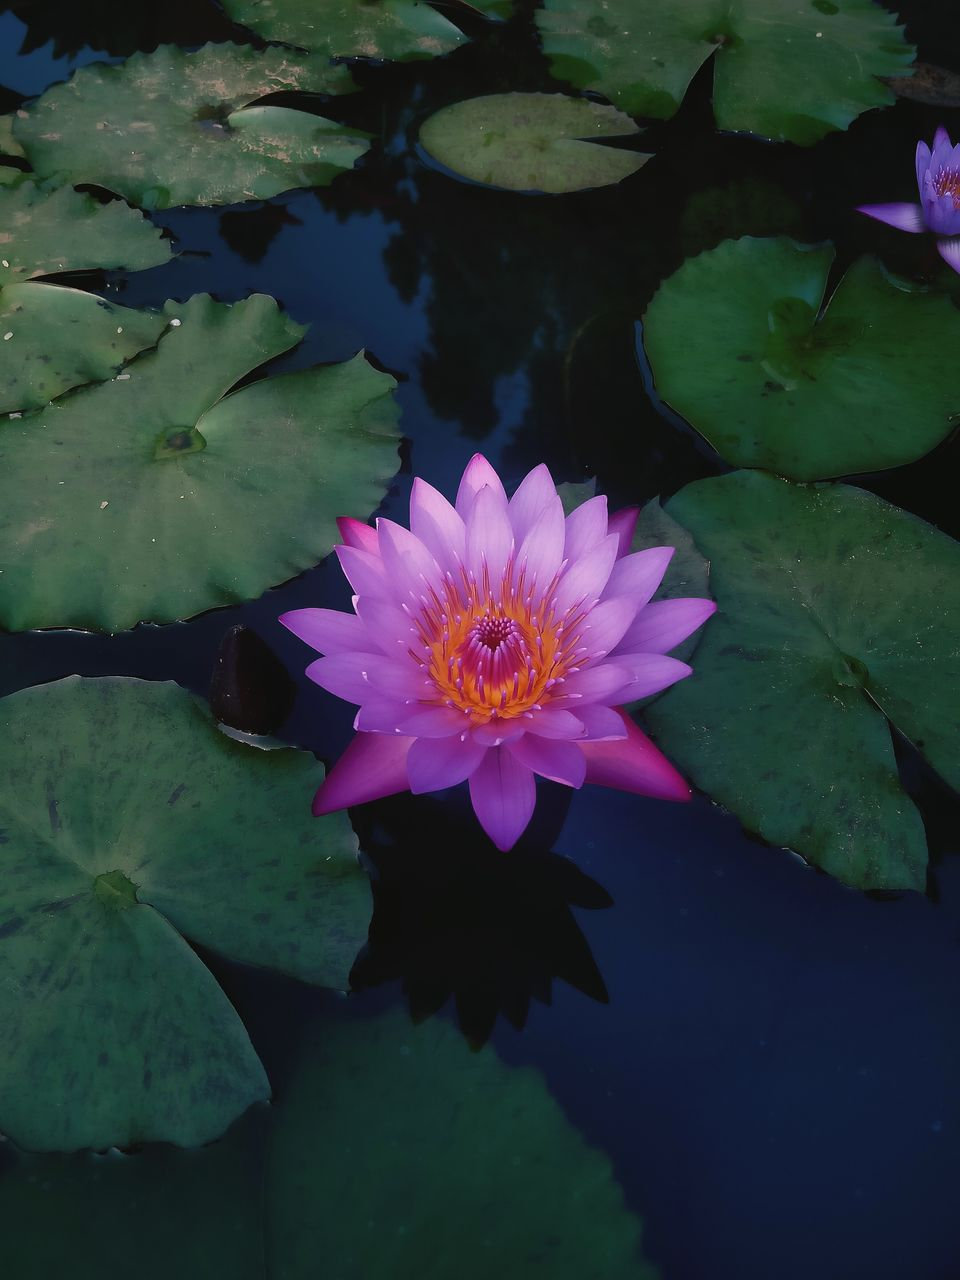 flower, petal, beauty in nature, nature, leaf, fragility, flower head, water lily, plant, growth, freshness, outdoors, water, pollen, no people, lotus water lily, day, floating on water, blooming, close-up, lily pad